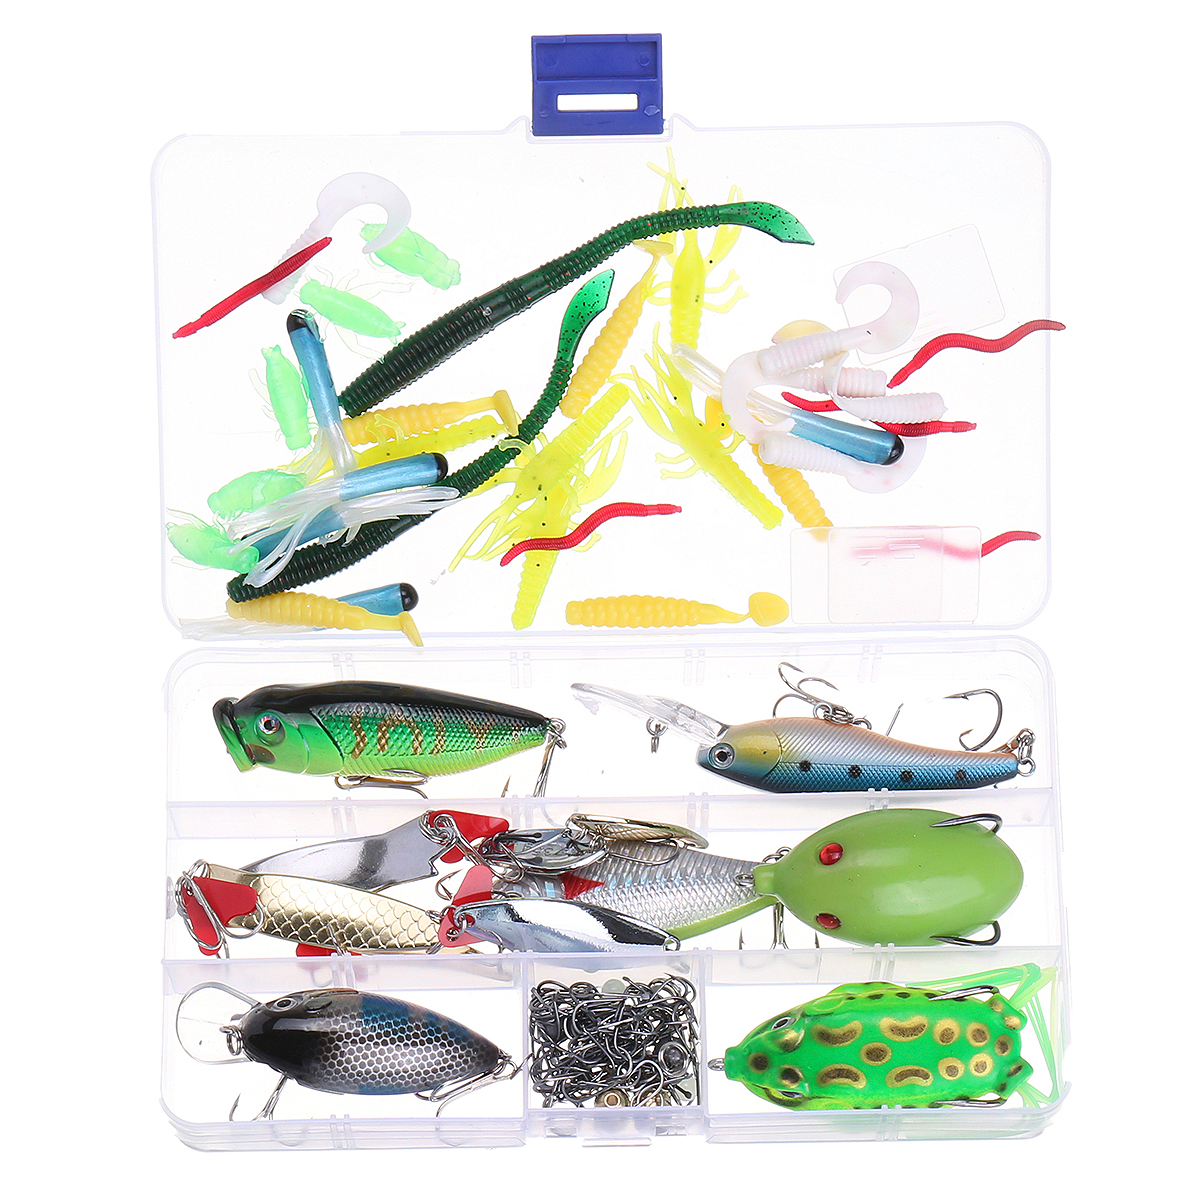 ZANLURE Fish Box Set Fishing Lure Crankbaits Hooks Minn